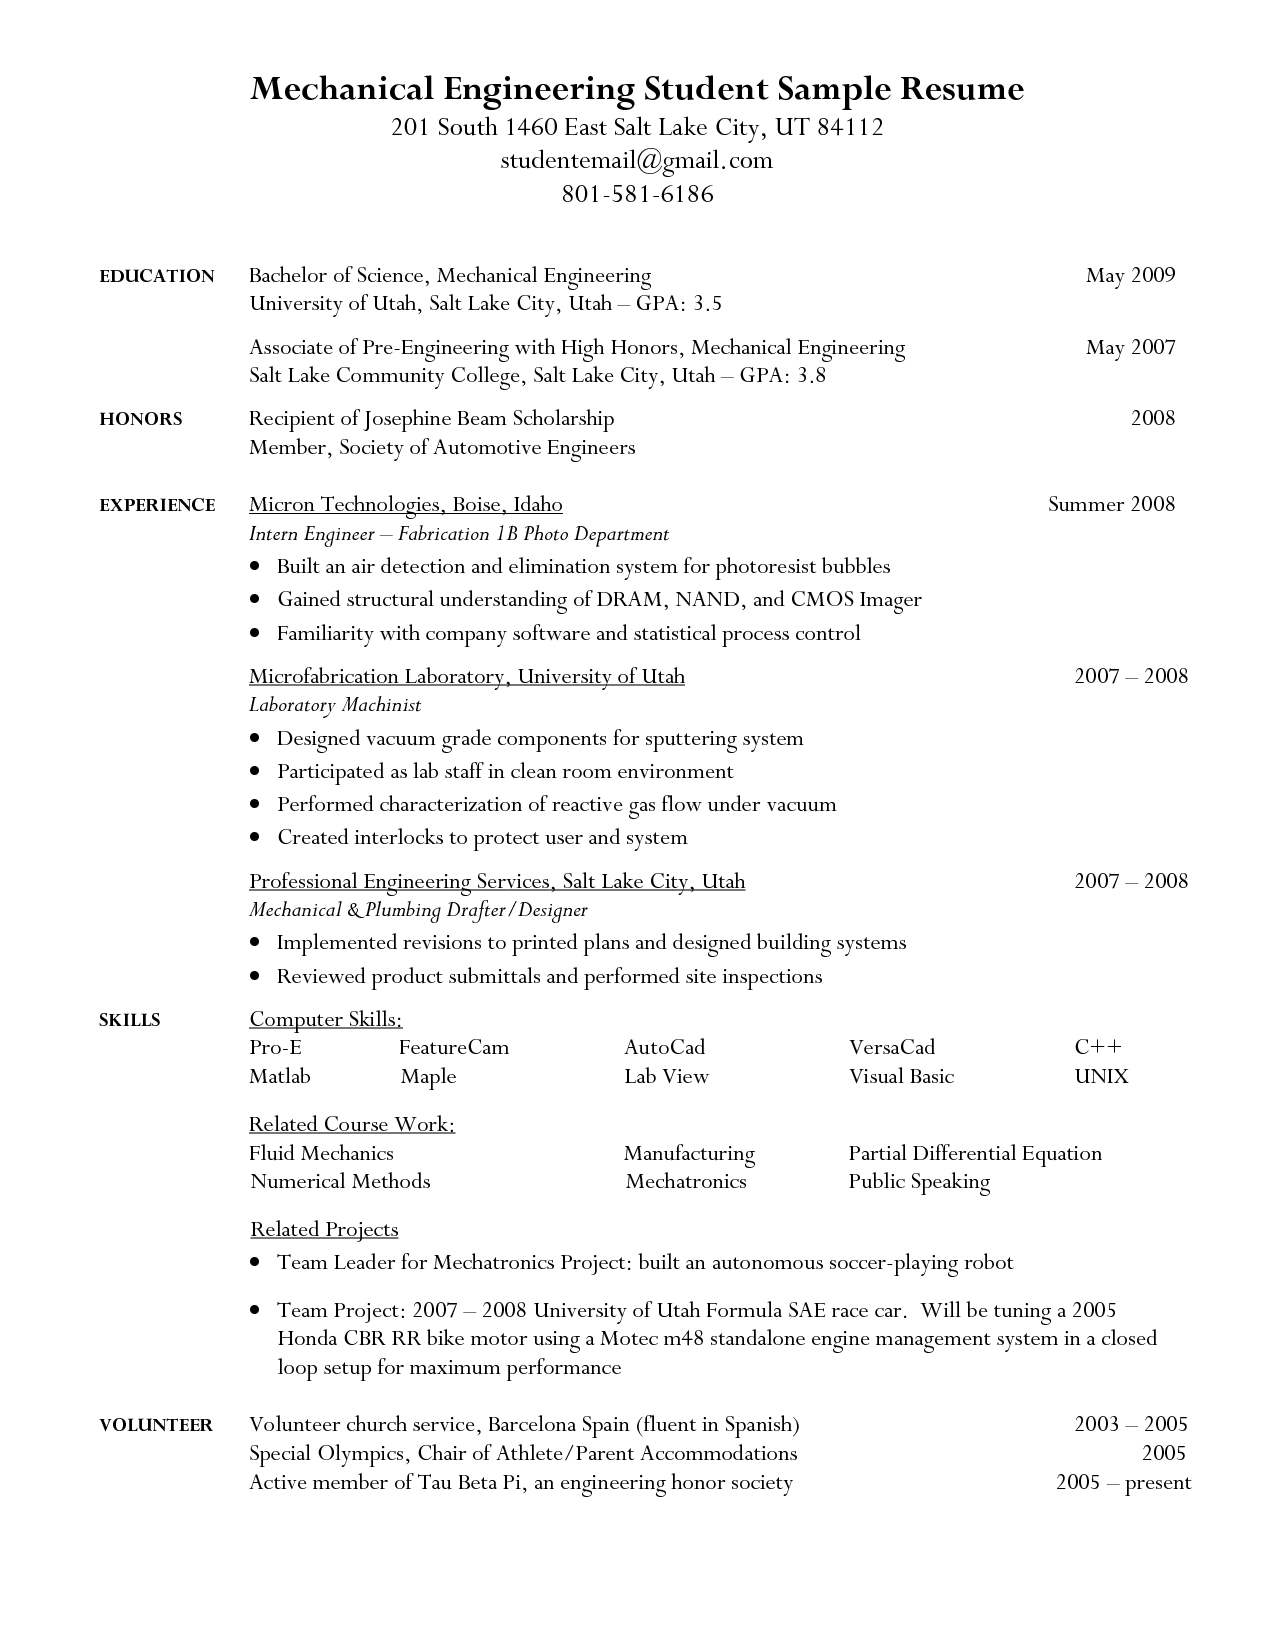 Resume Objective For Civil Engineering Student Engineering Student Resume Google Search Resumes